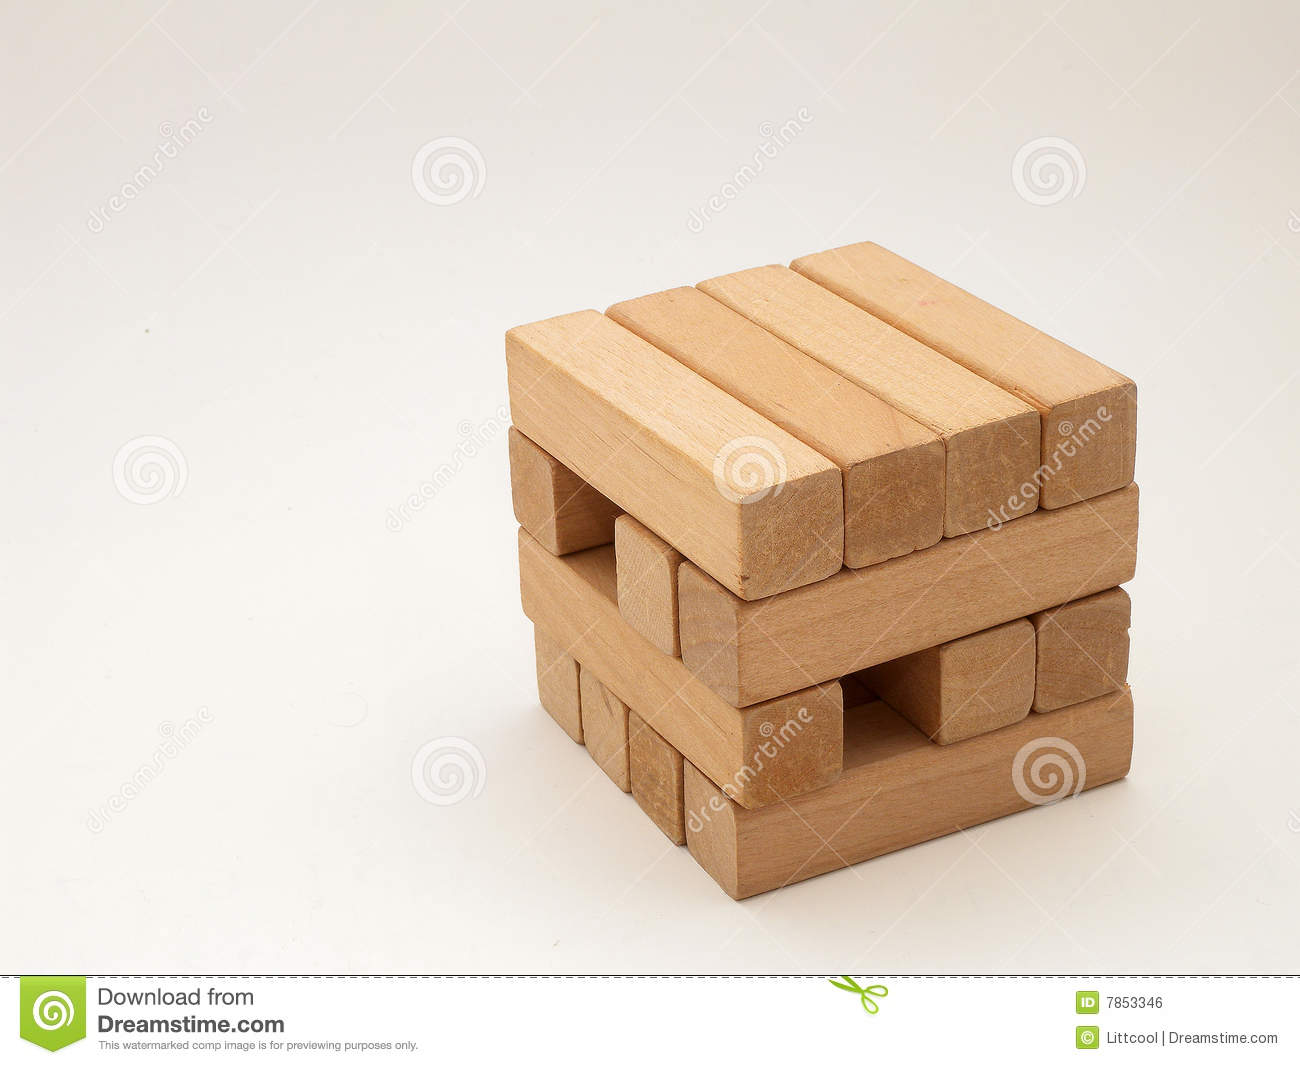 What To Build With Wood Blocks